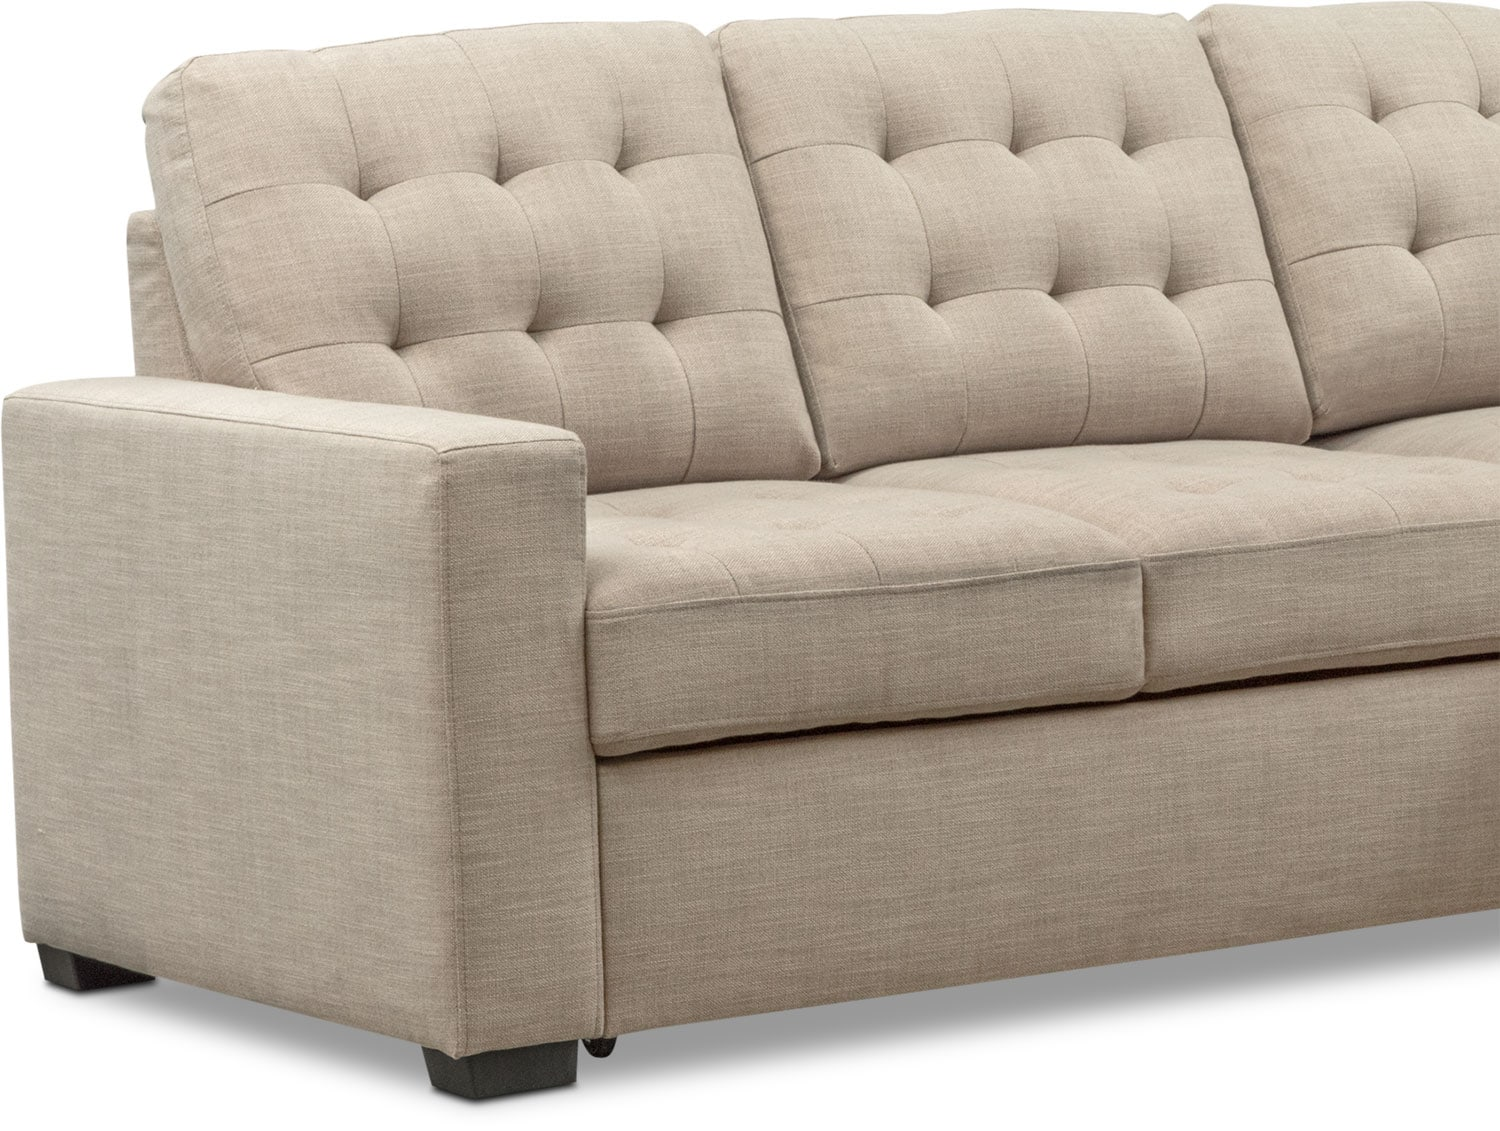 Chatman 2 Piece Sleeper Sectional With Right Facing Chaise